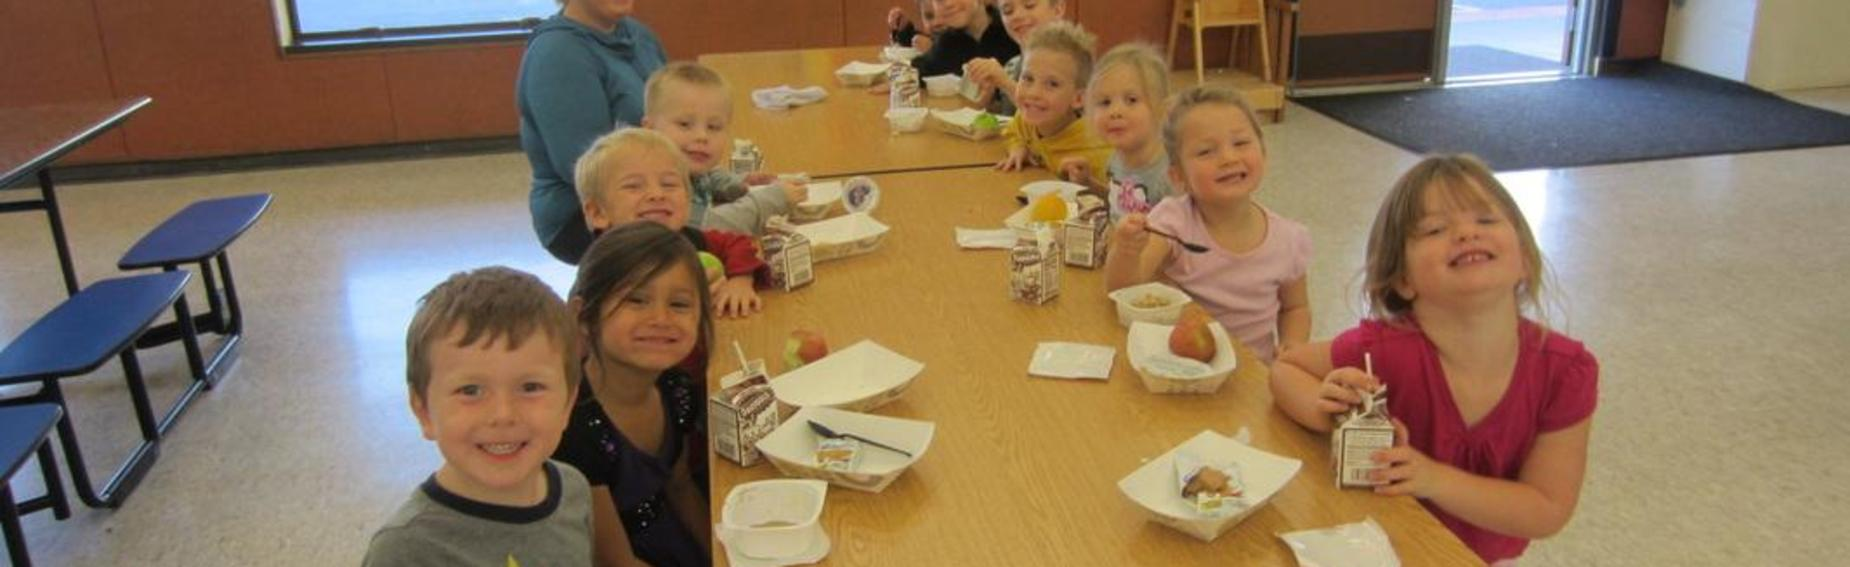 Children smiling while eating lunch at a cafeteria table.